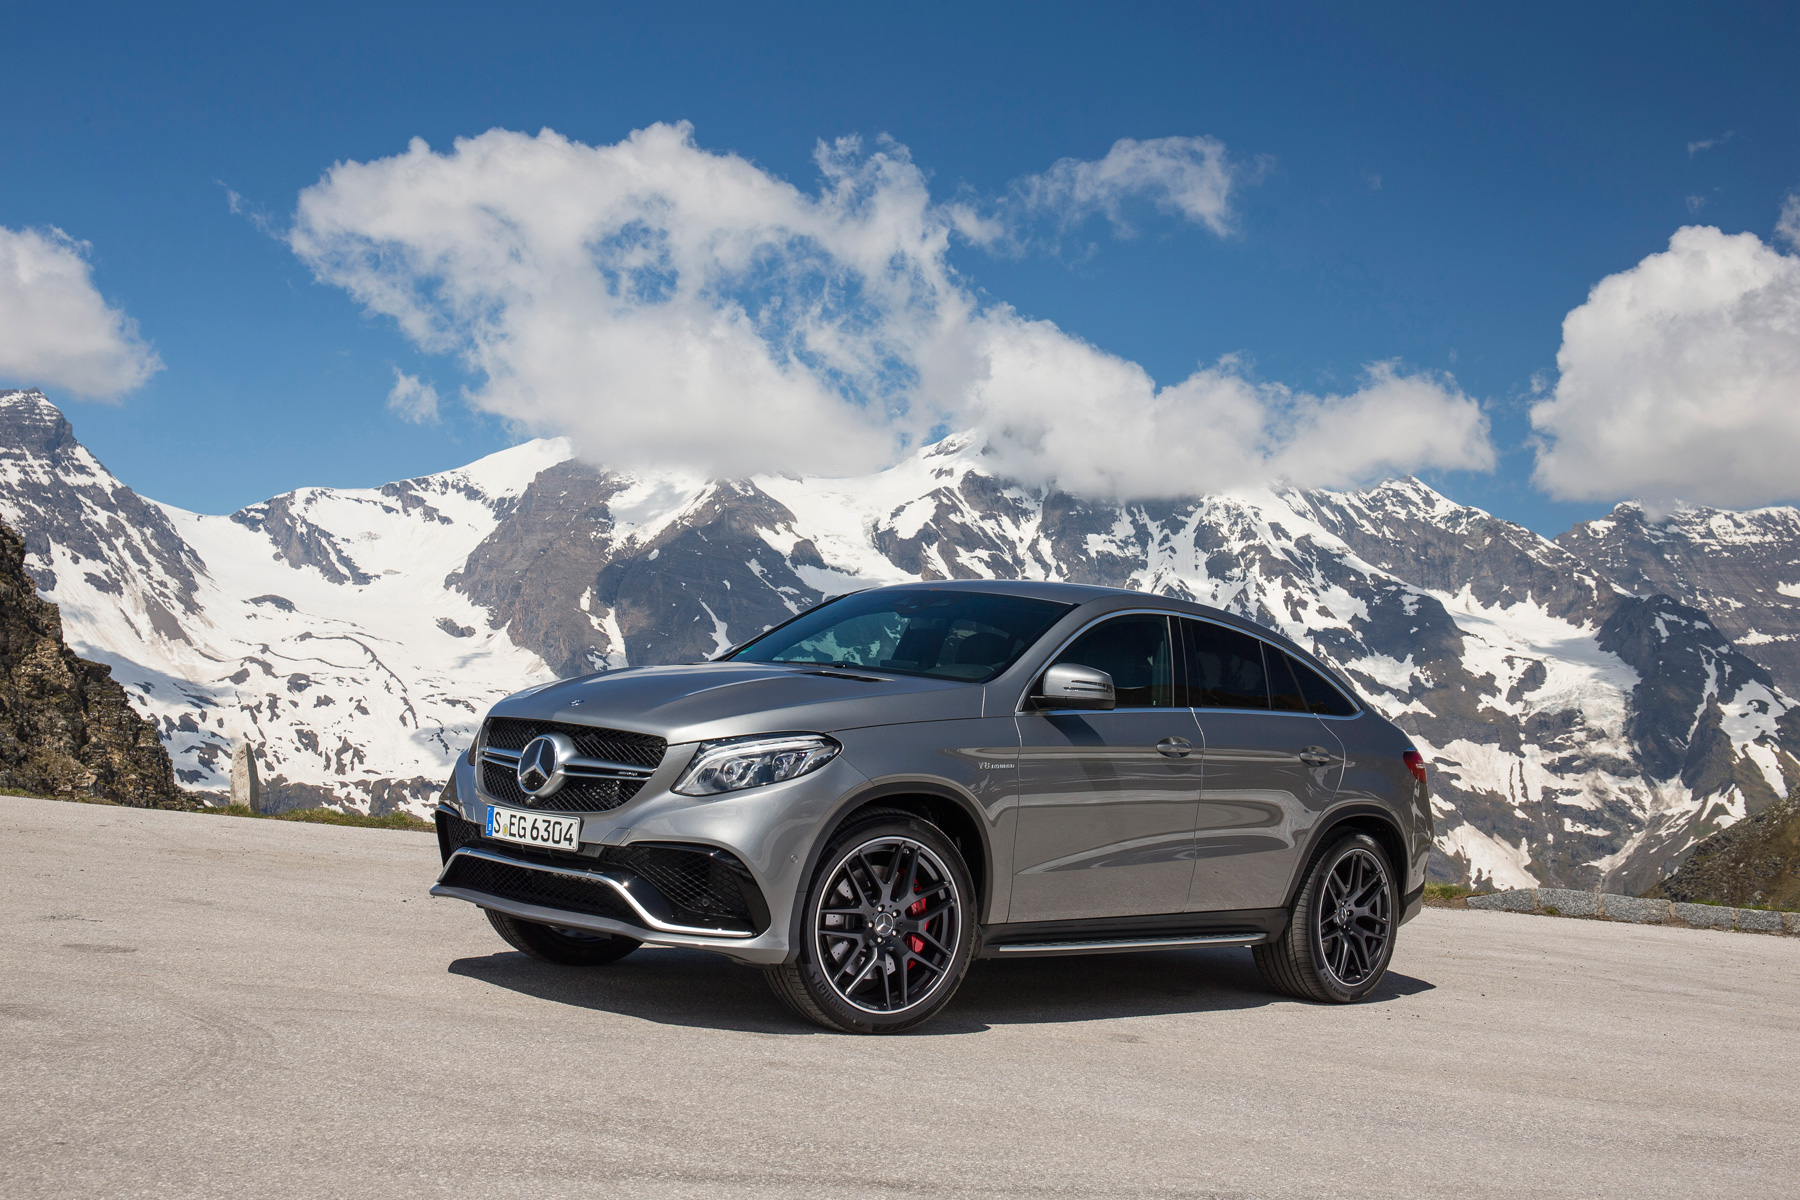 mercedes-amg gle 63 s coupe: 2015 first drive | motoring research